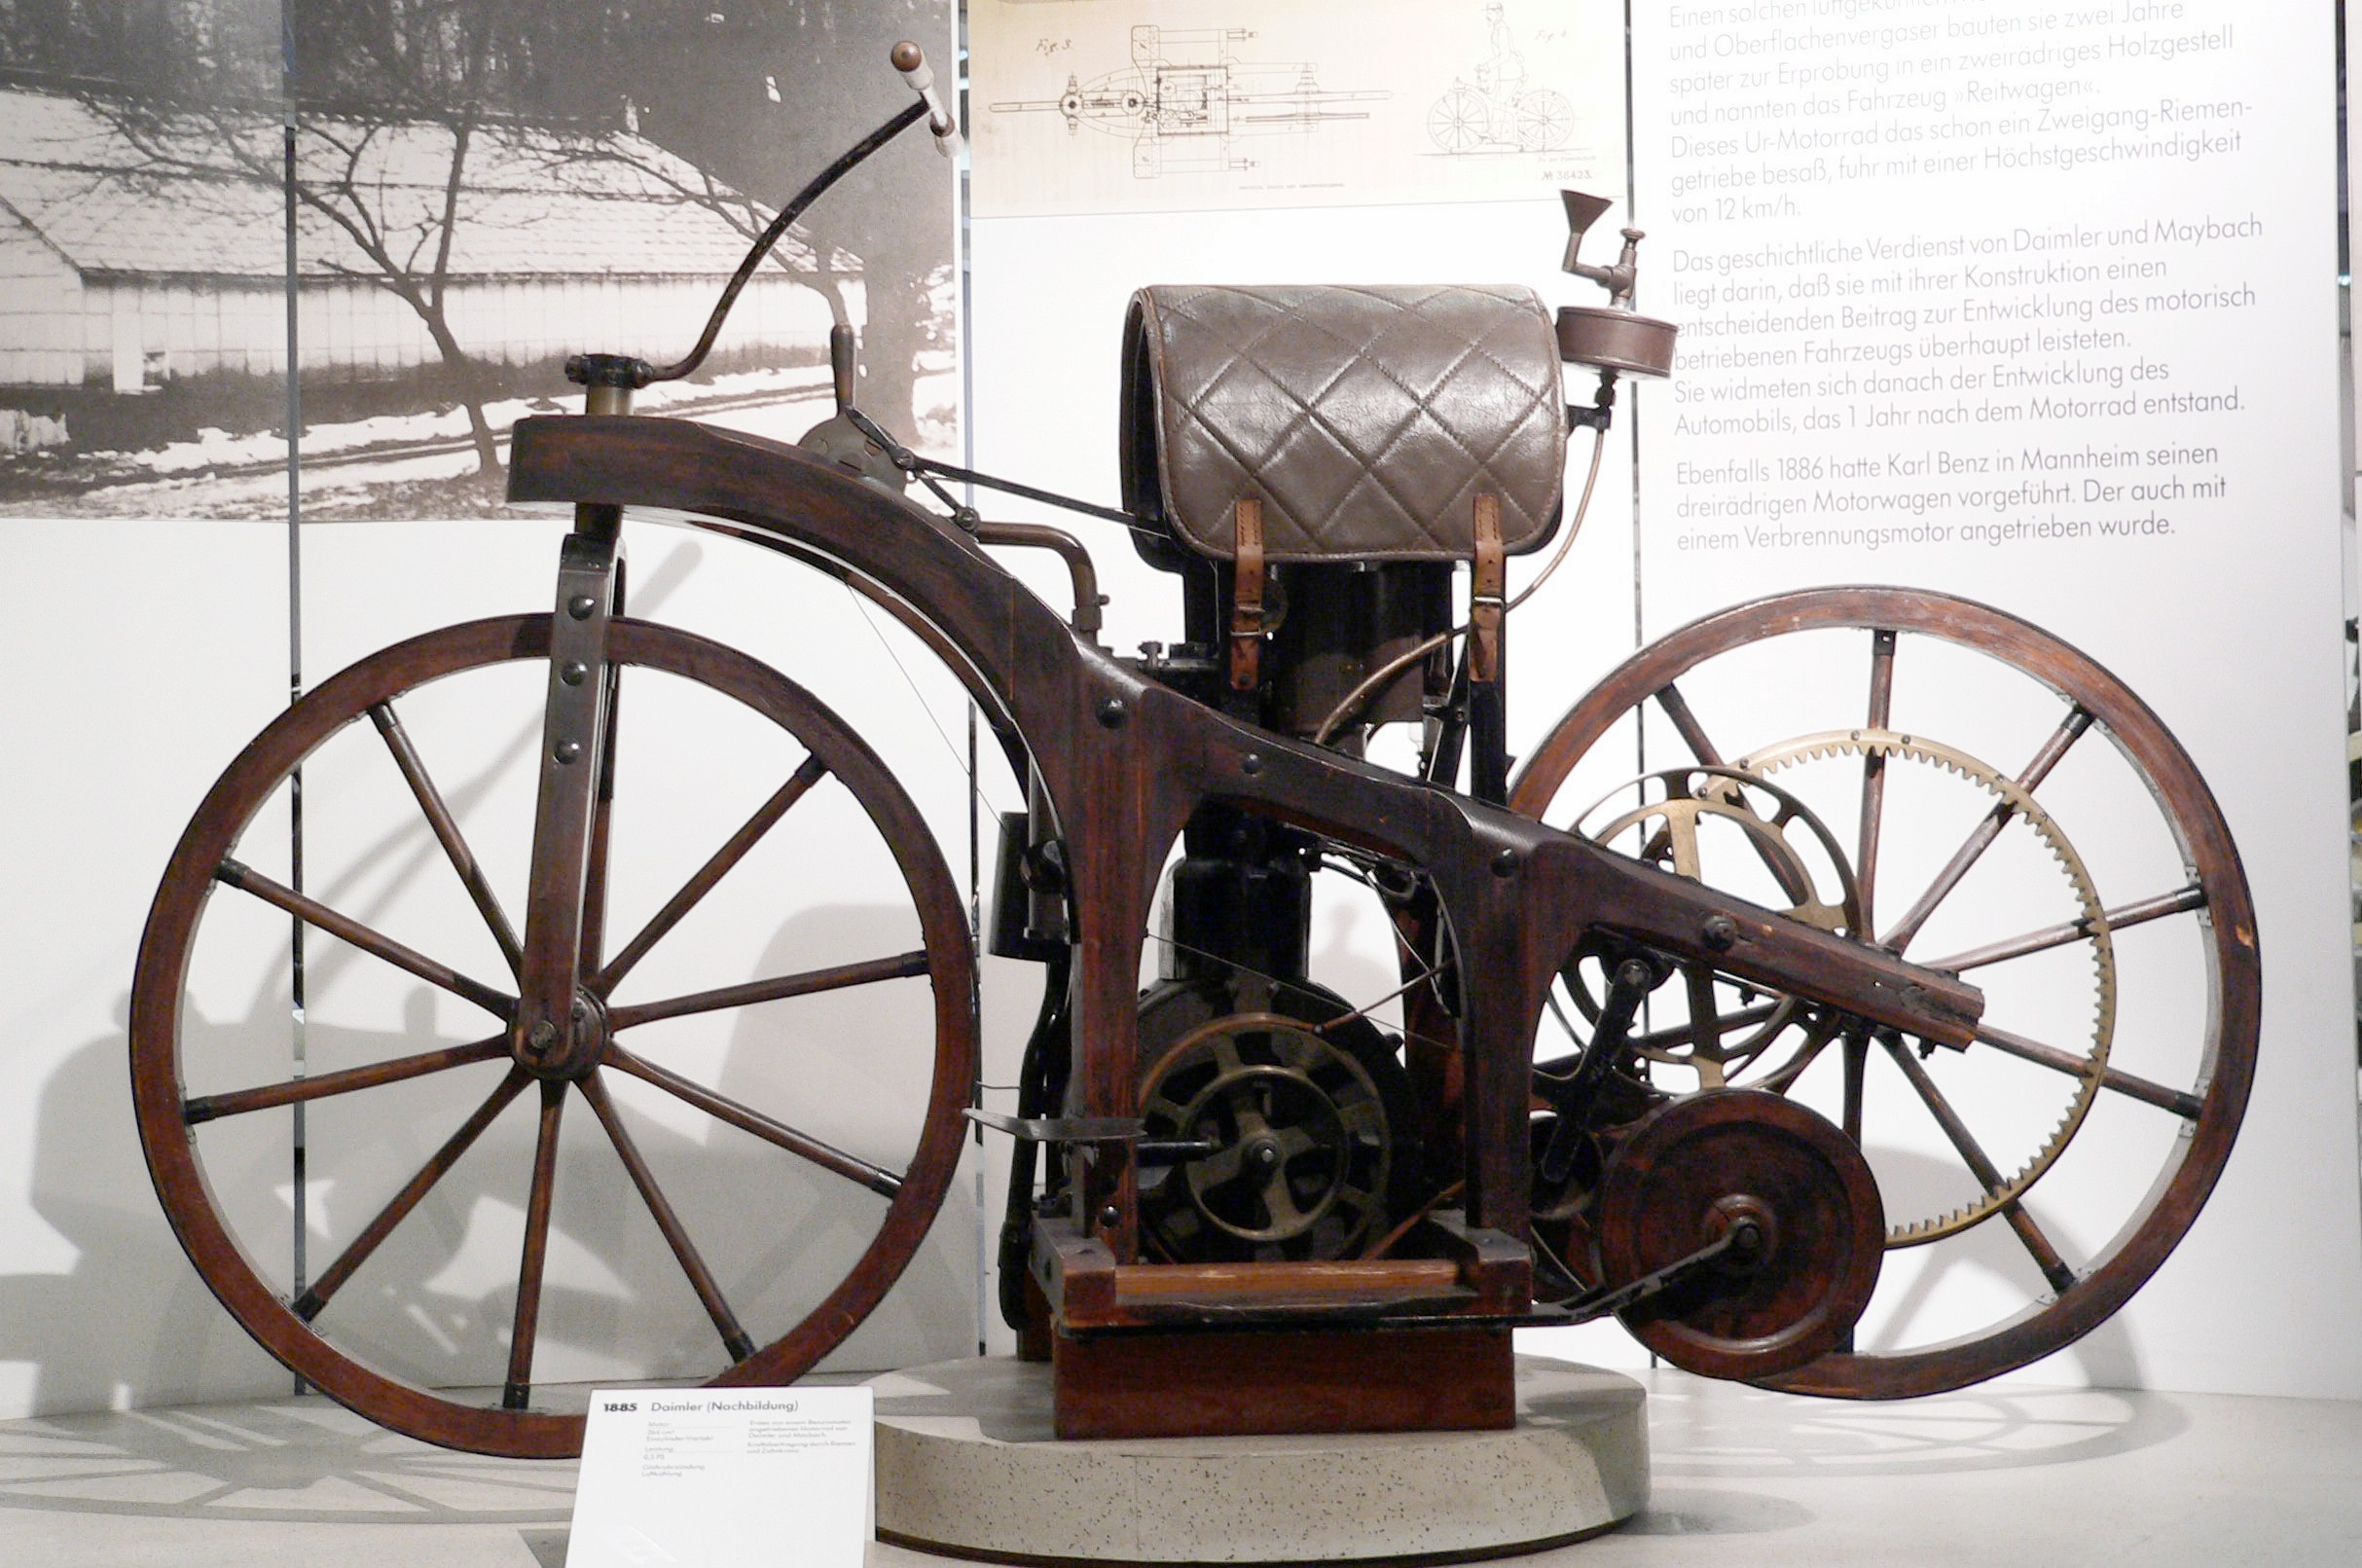 The  Reitwagen  (riding car), the first internal combustion motorcycle invented by Gottlieb Daimler and Wilhelm Maybach, 1885